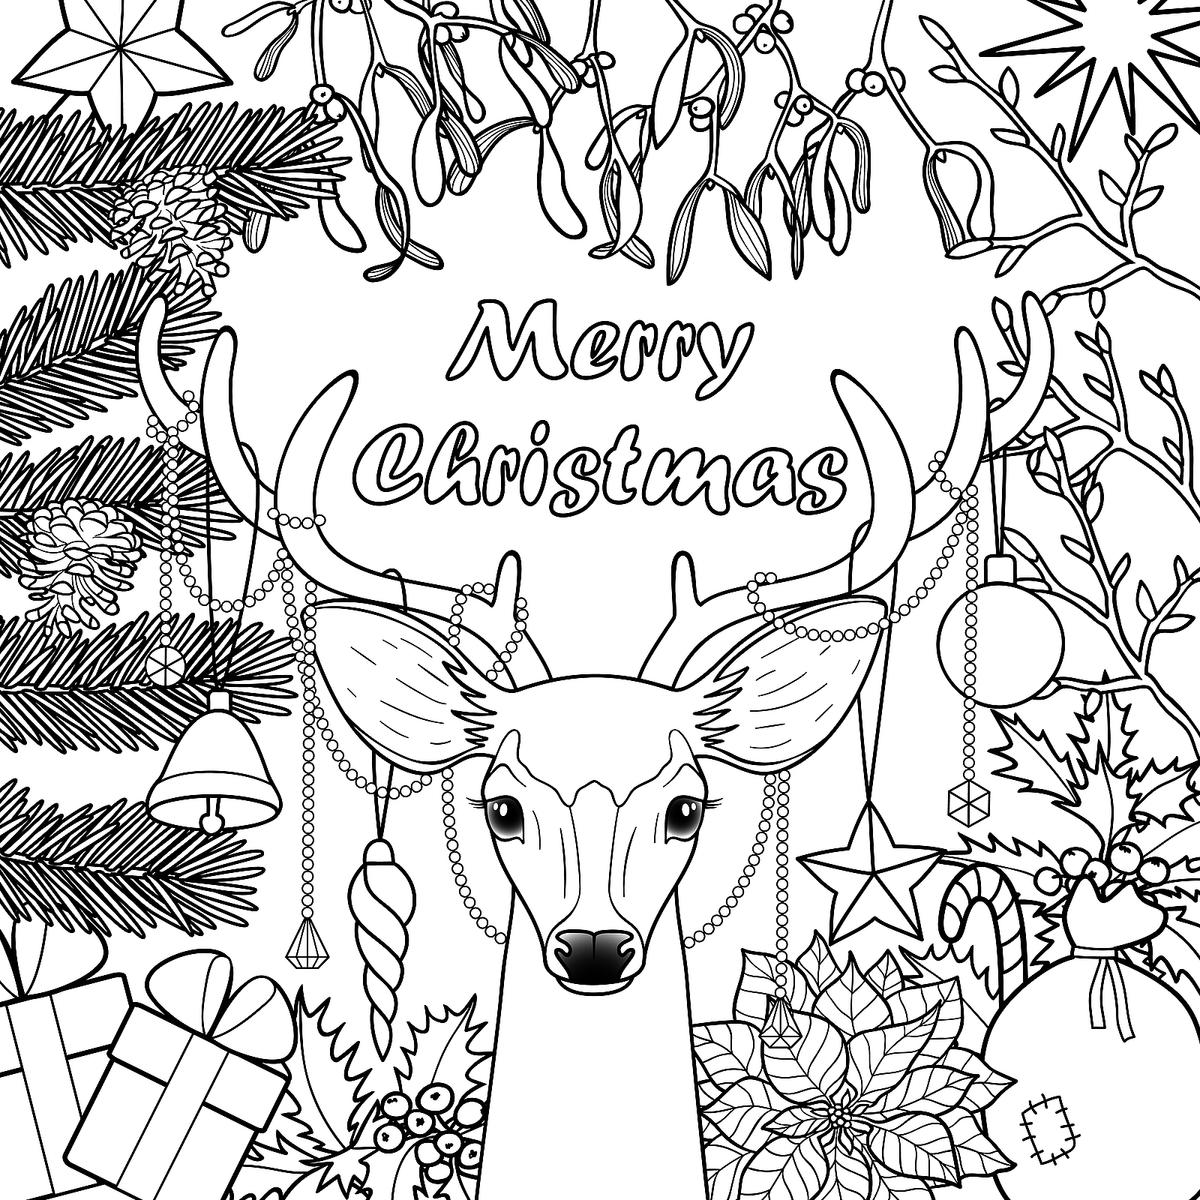 Christmas Coloring Pages for Kids & Adults: 16 Free ... | christmas colouring pages for adults